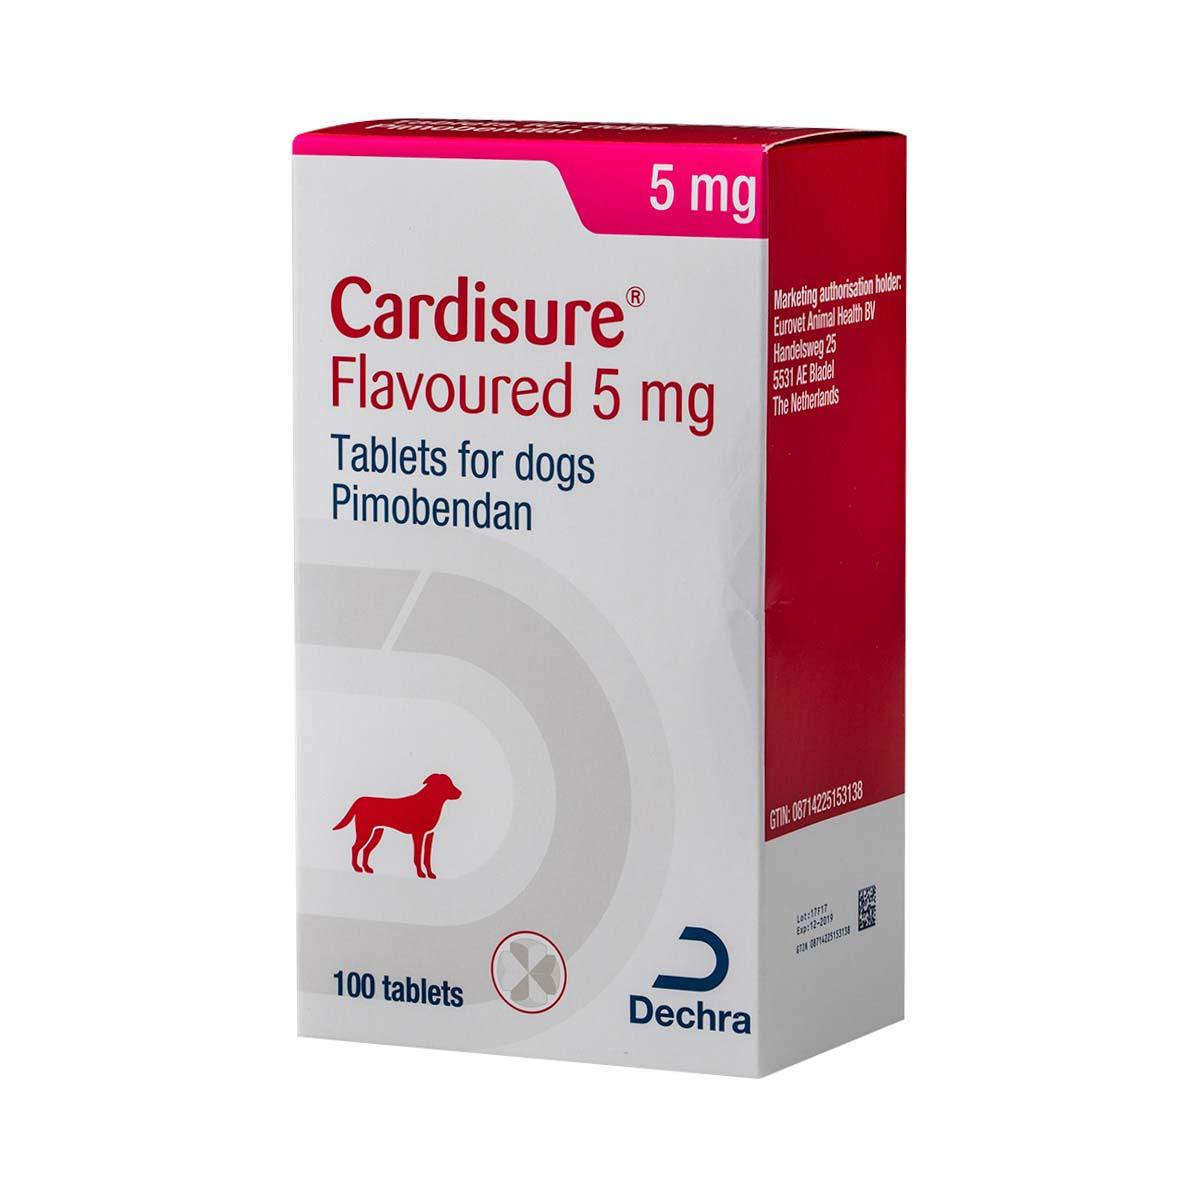 cardisure flavoured tablets 5mg shop now at pet drugs online